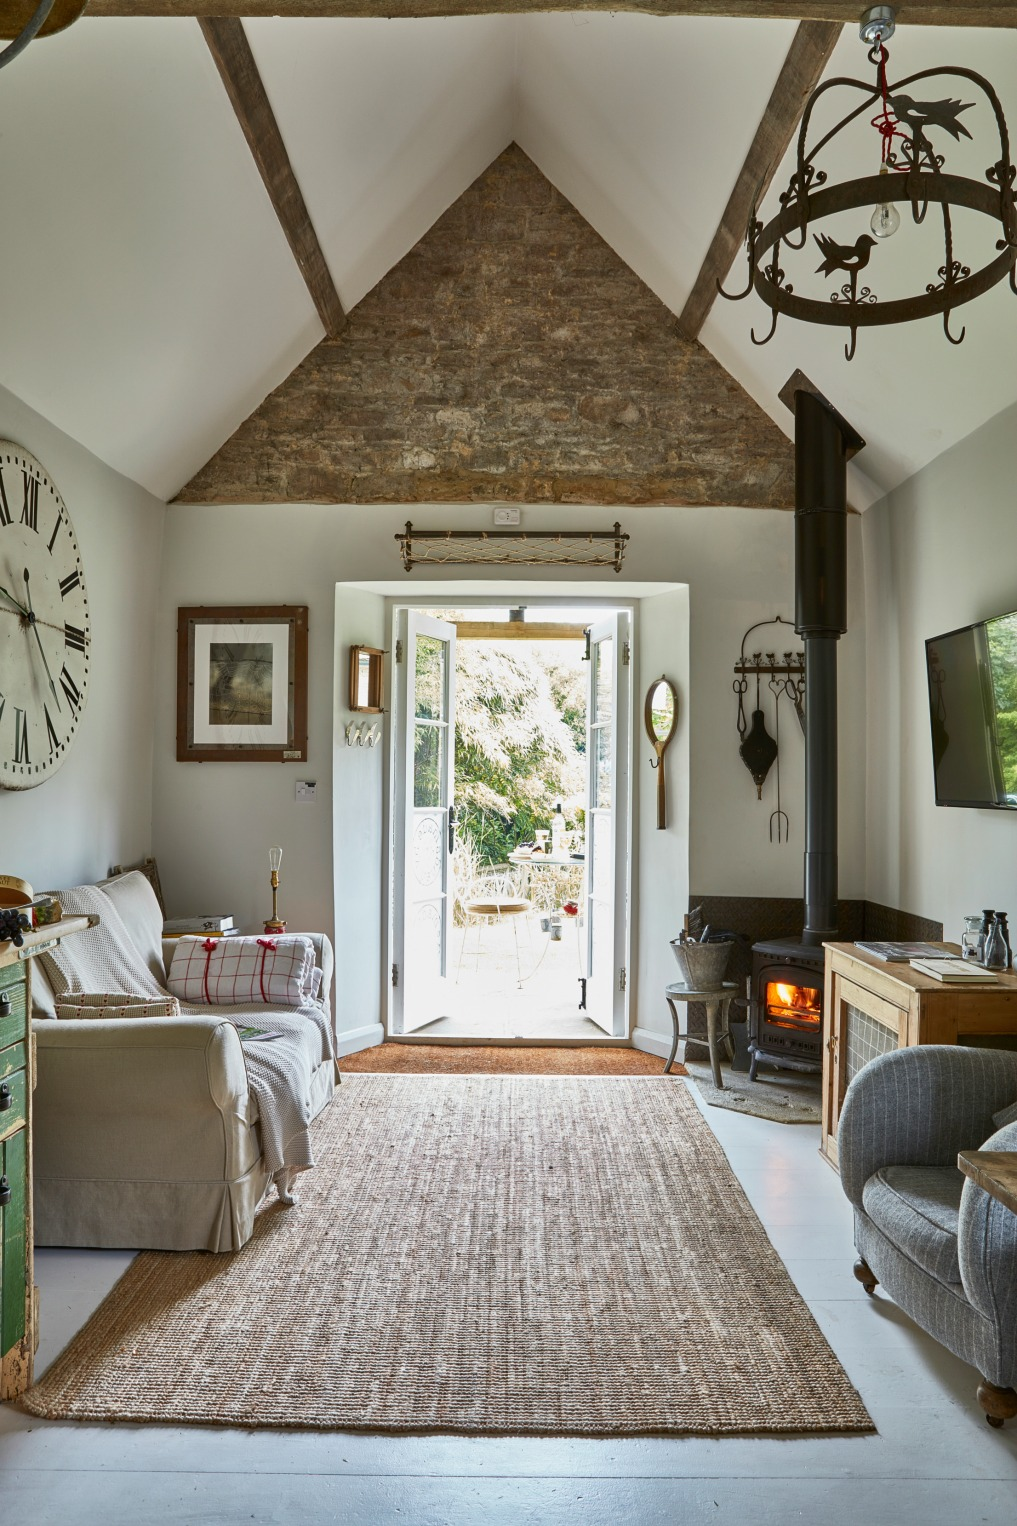 Tiny cottage family room - love the original stone walls and beams kellyelko.com